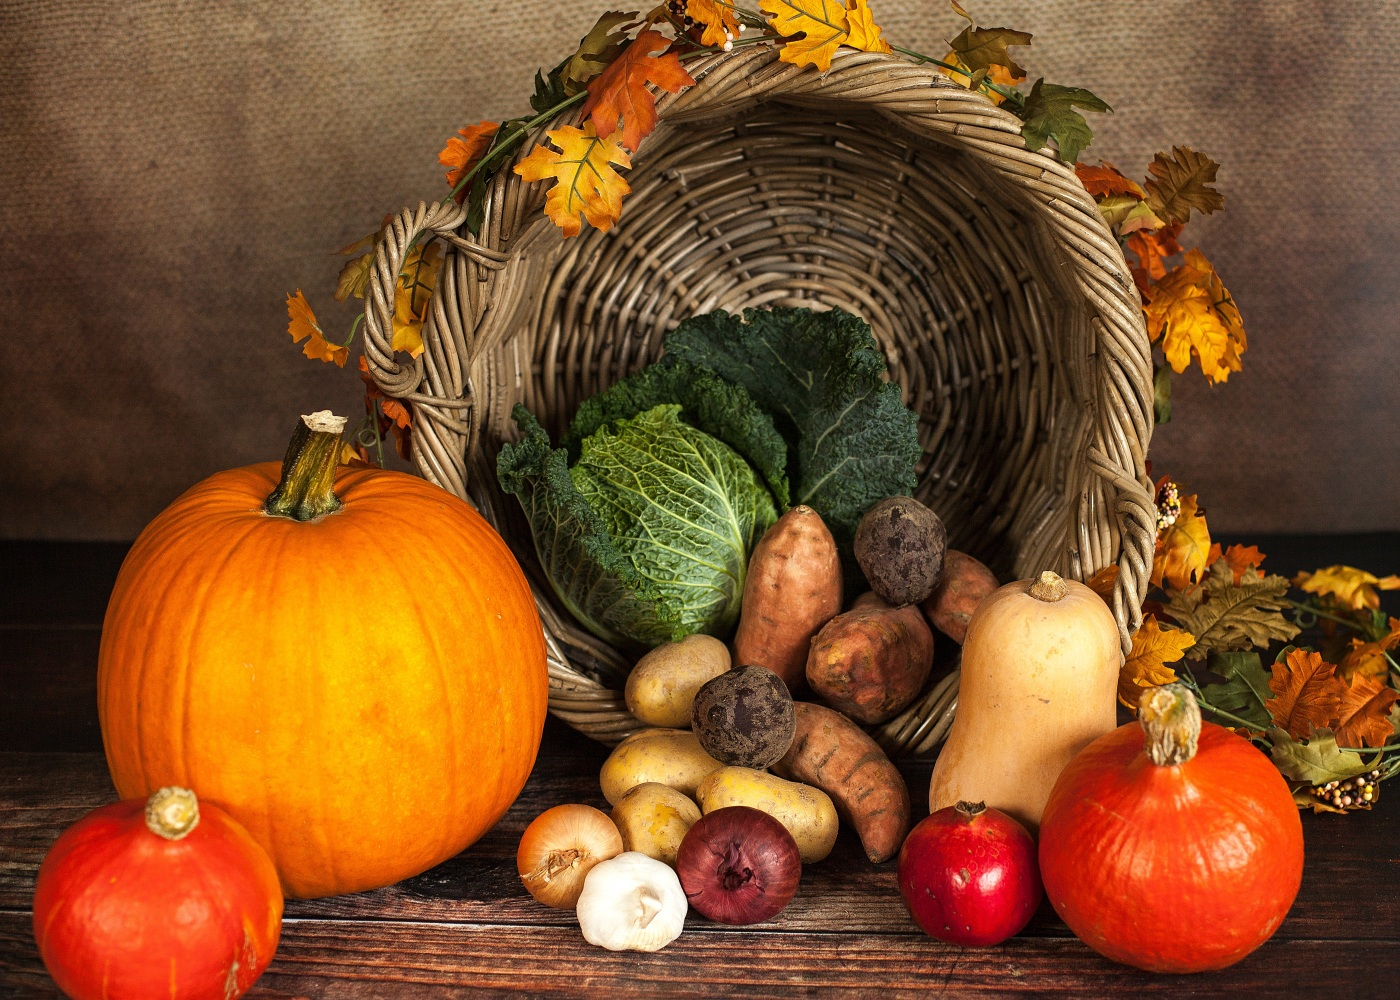 Thanksgiving basket with fruits and vegetables